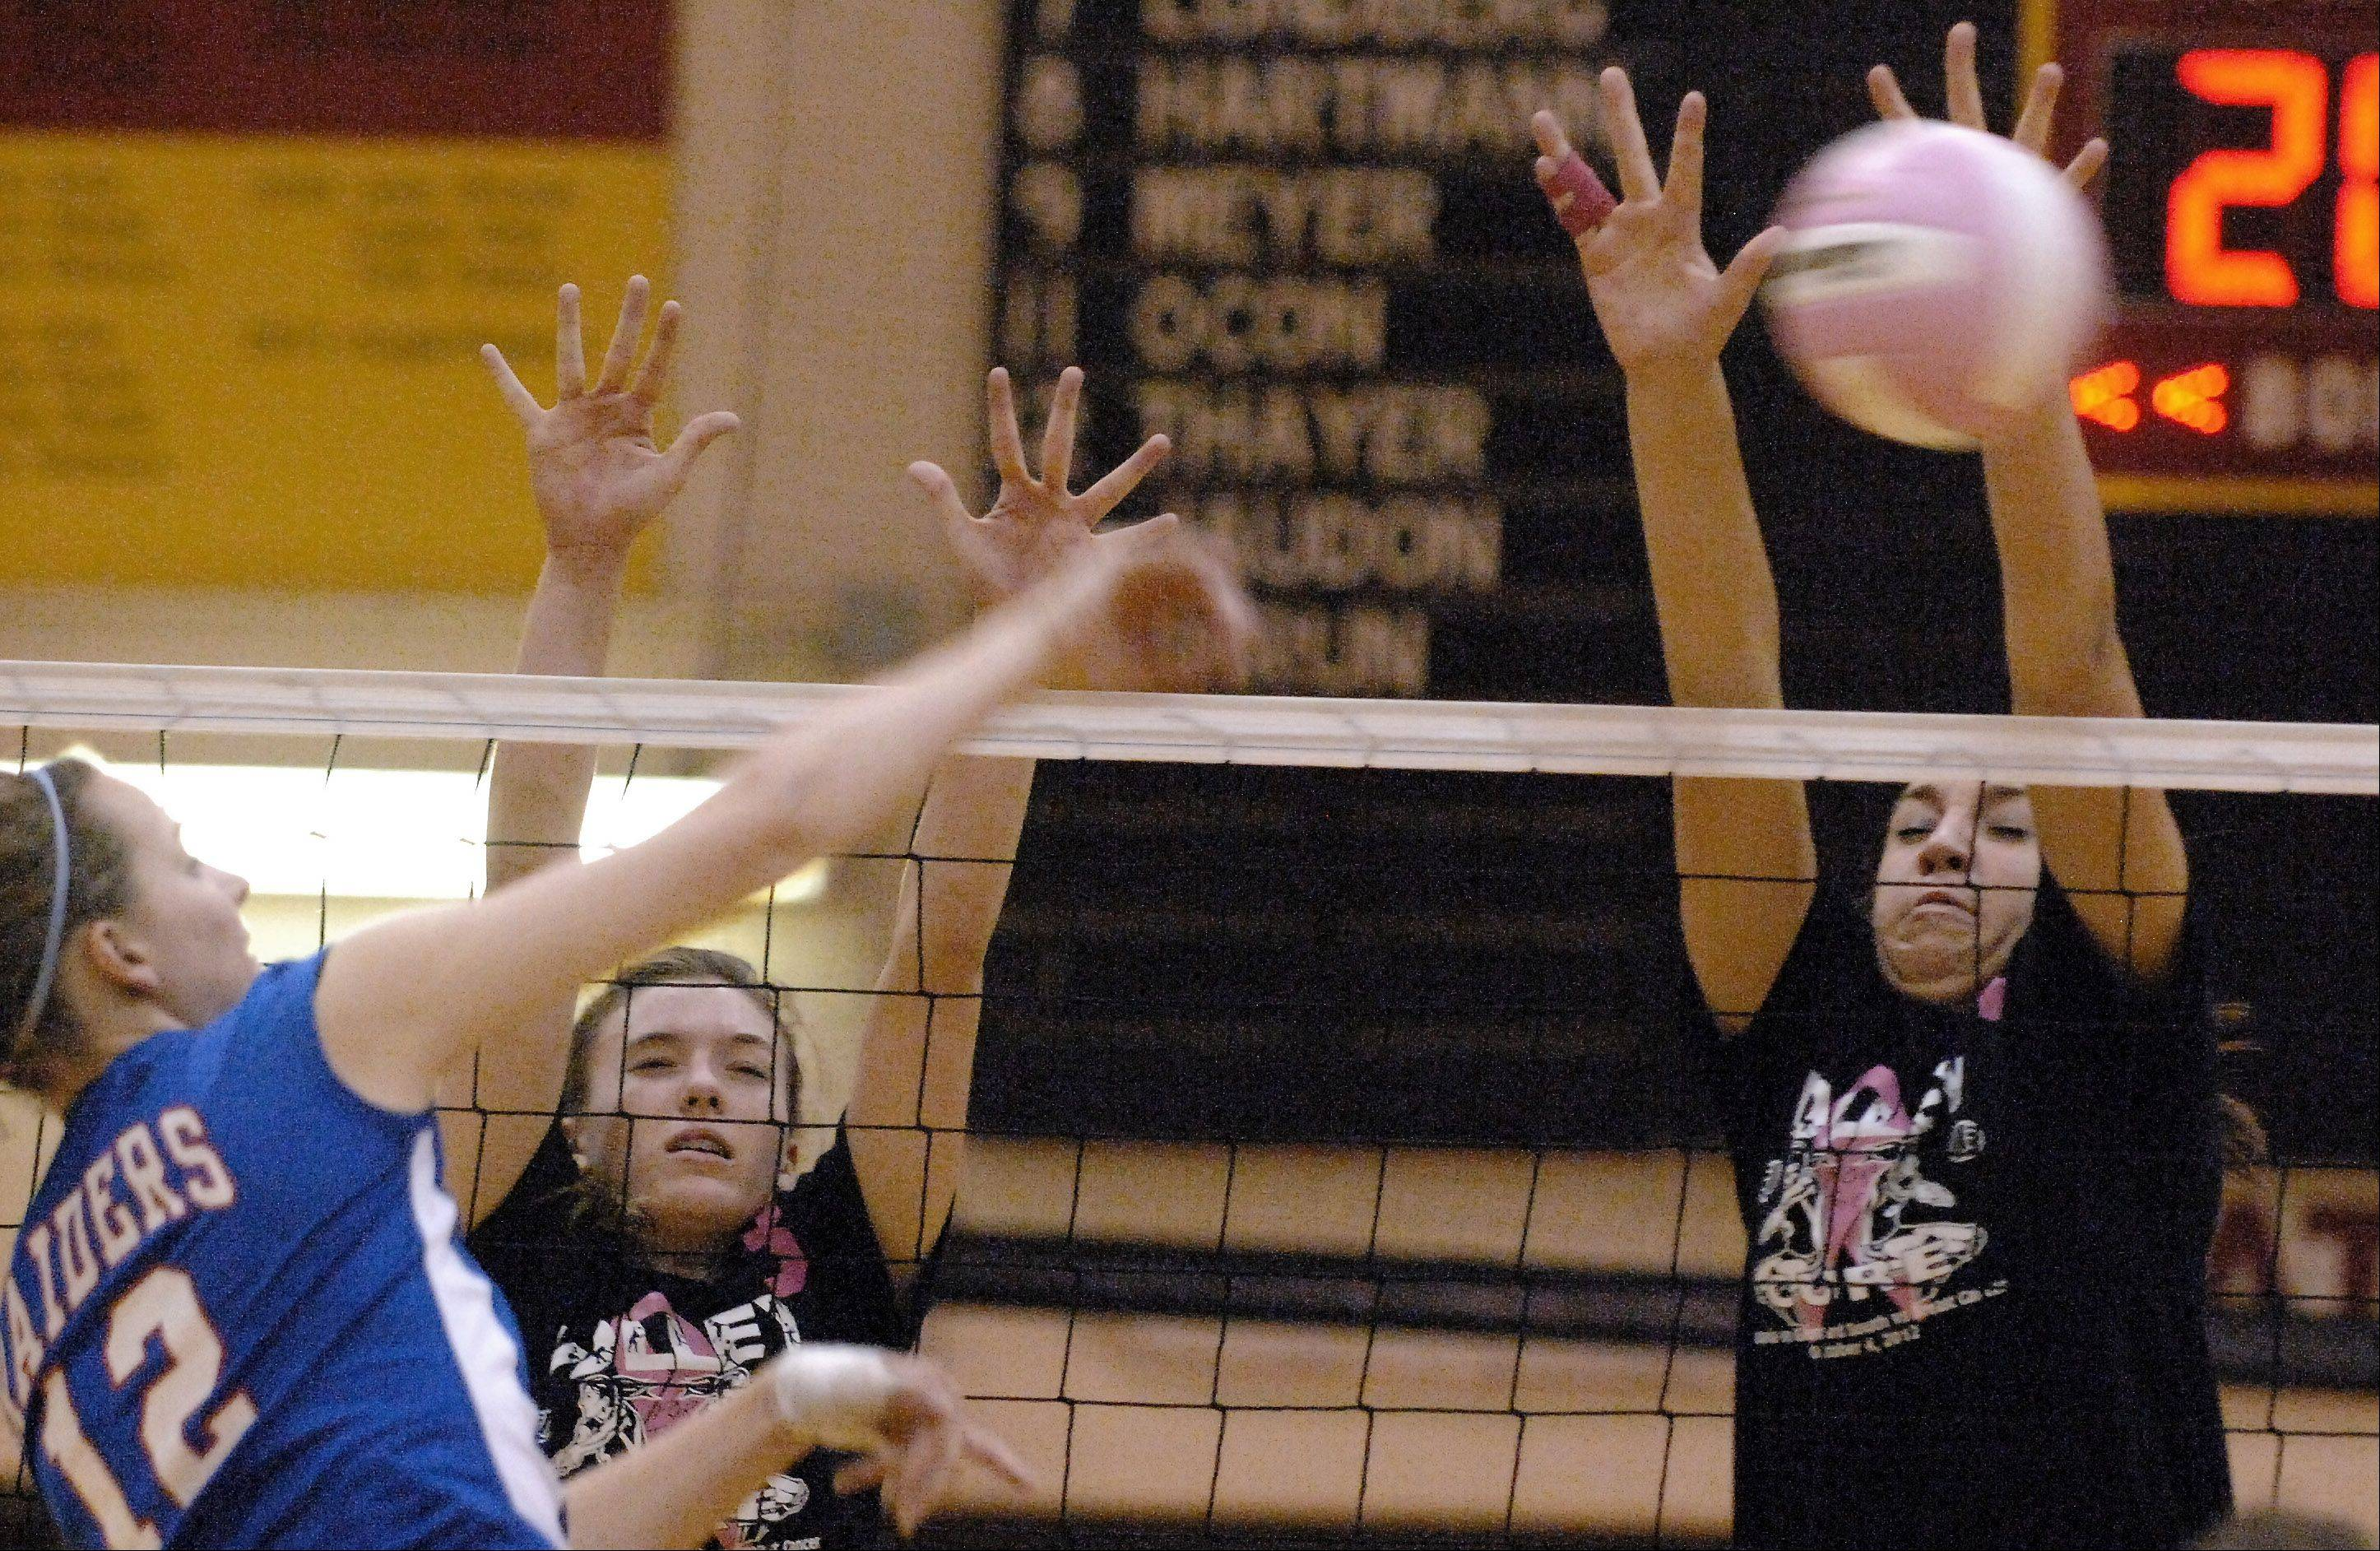 Batavia's Kristen Koncelik blocks a shot by Glenbard South's Anna Watterson during Thursday's game at Batavia.